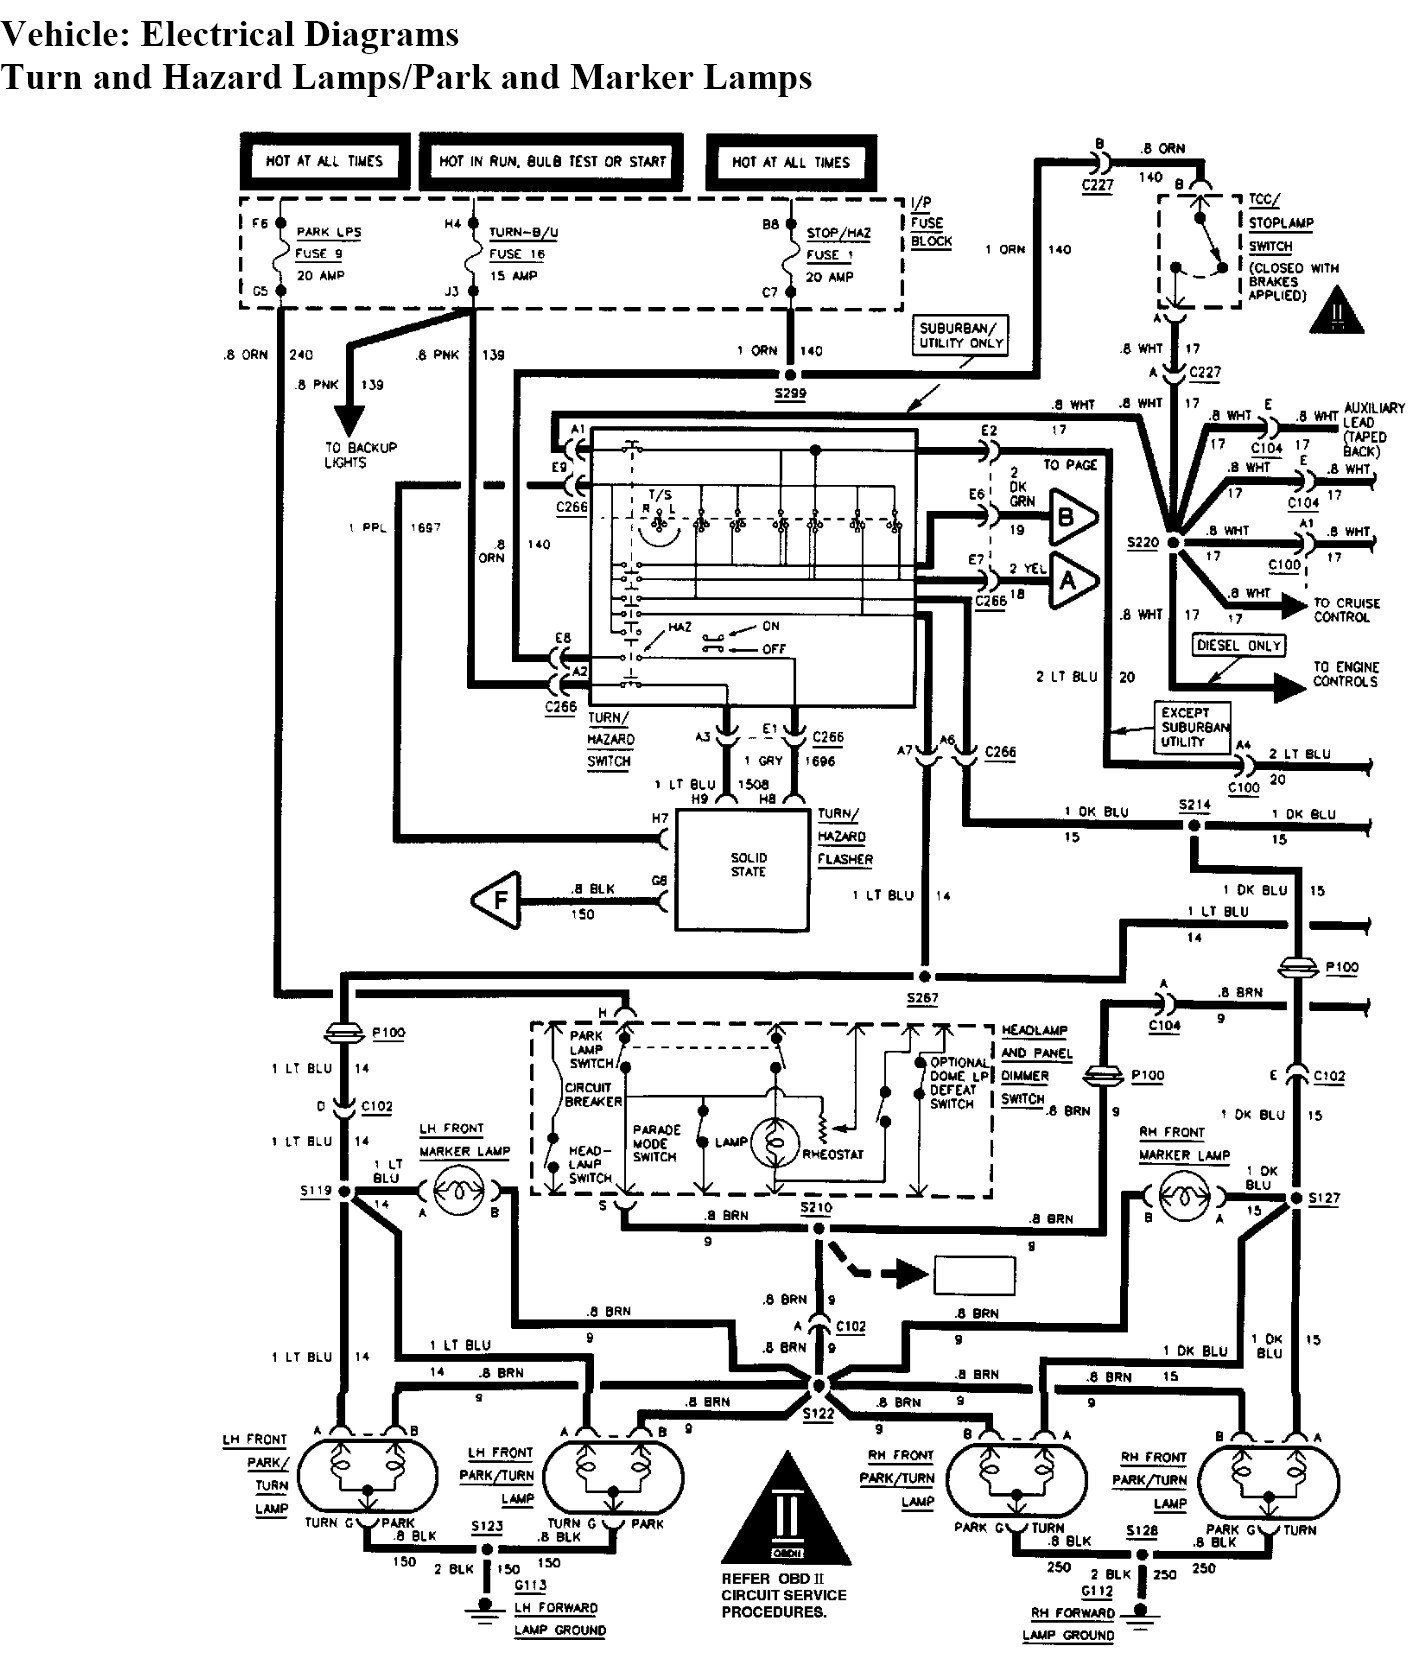 jeep cherokee door lock switch wiring diagram free